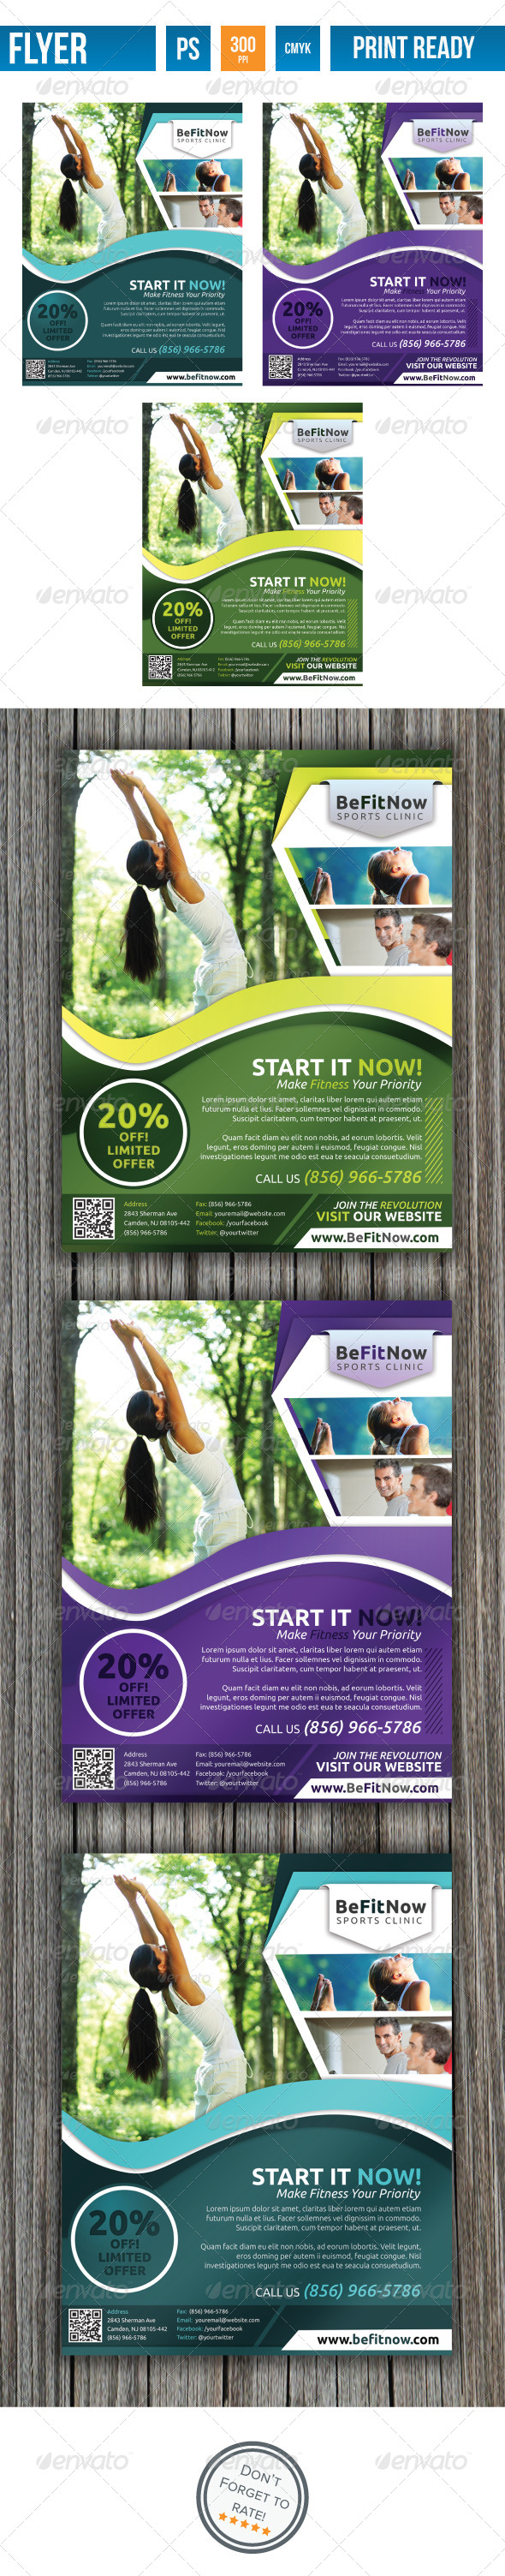 Fitness Flyer V2 - Flyers Print Templates